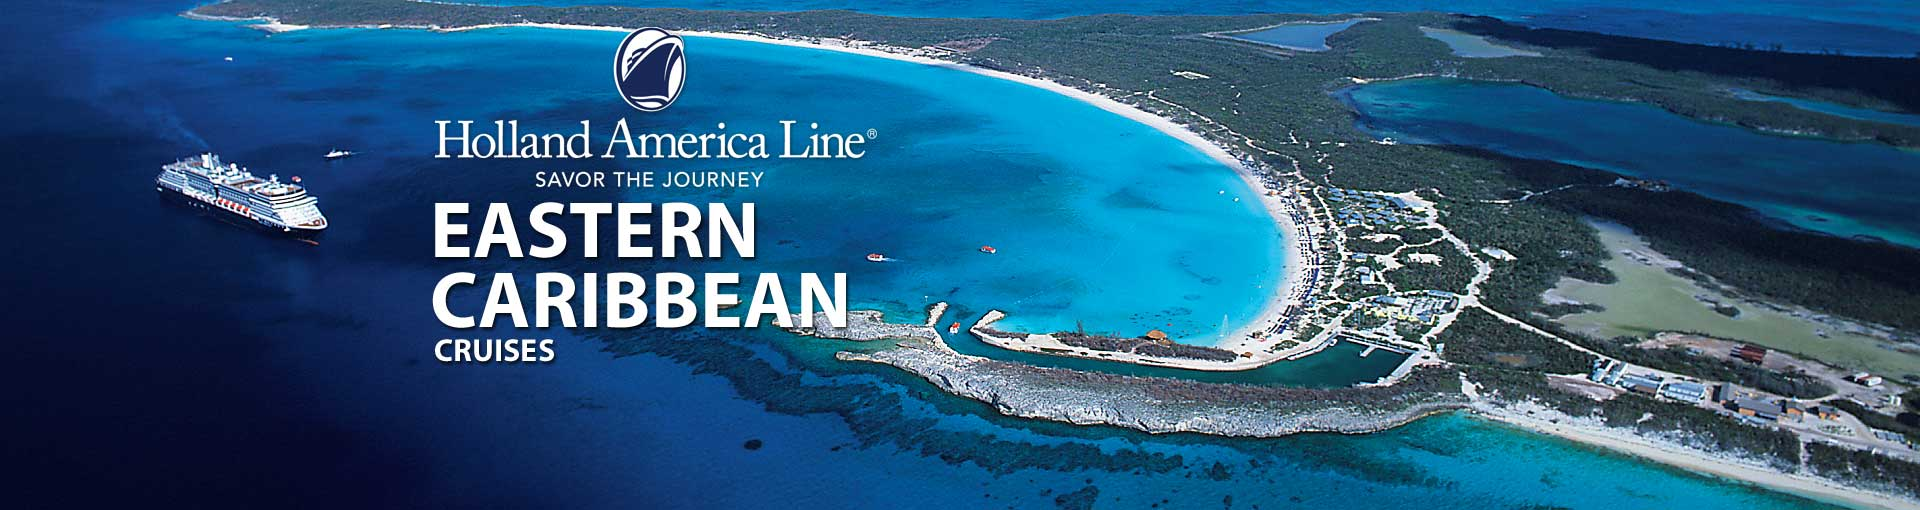 Holland America Eastern Caribbean Cruises